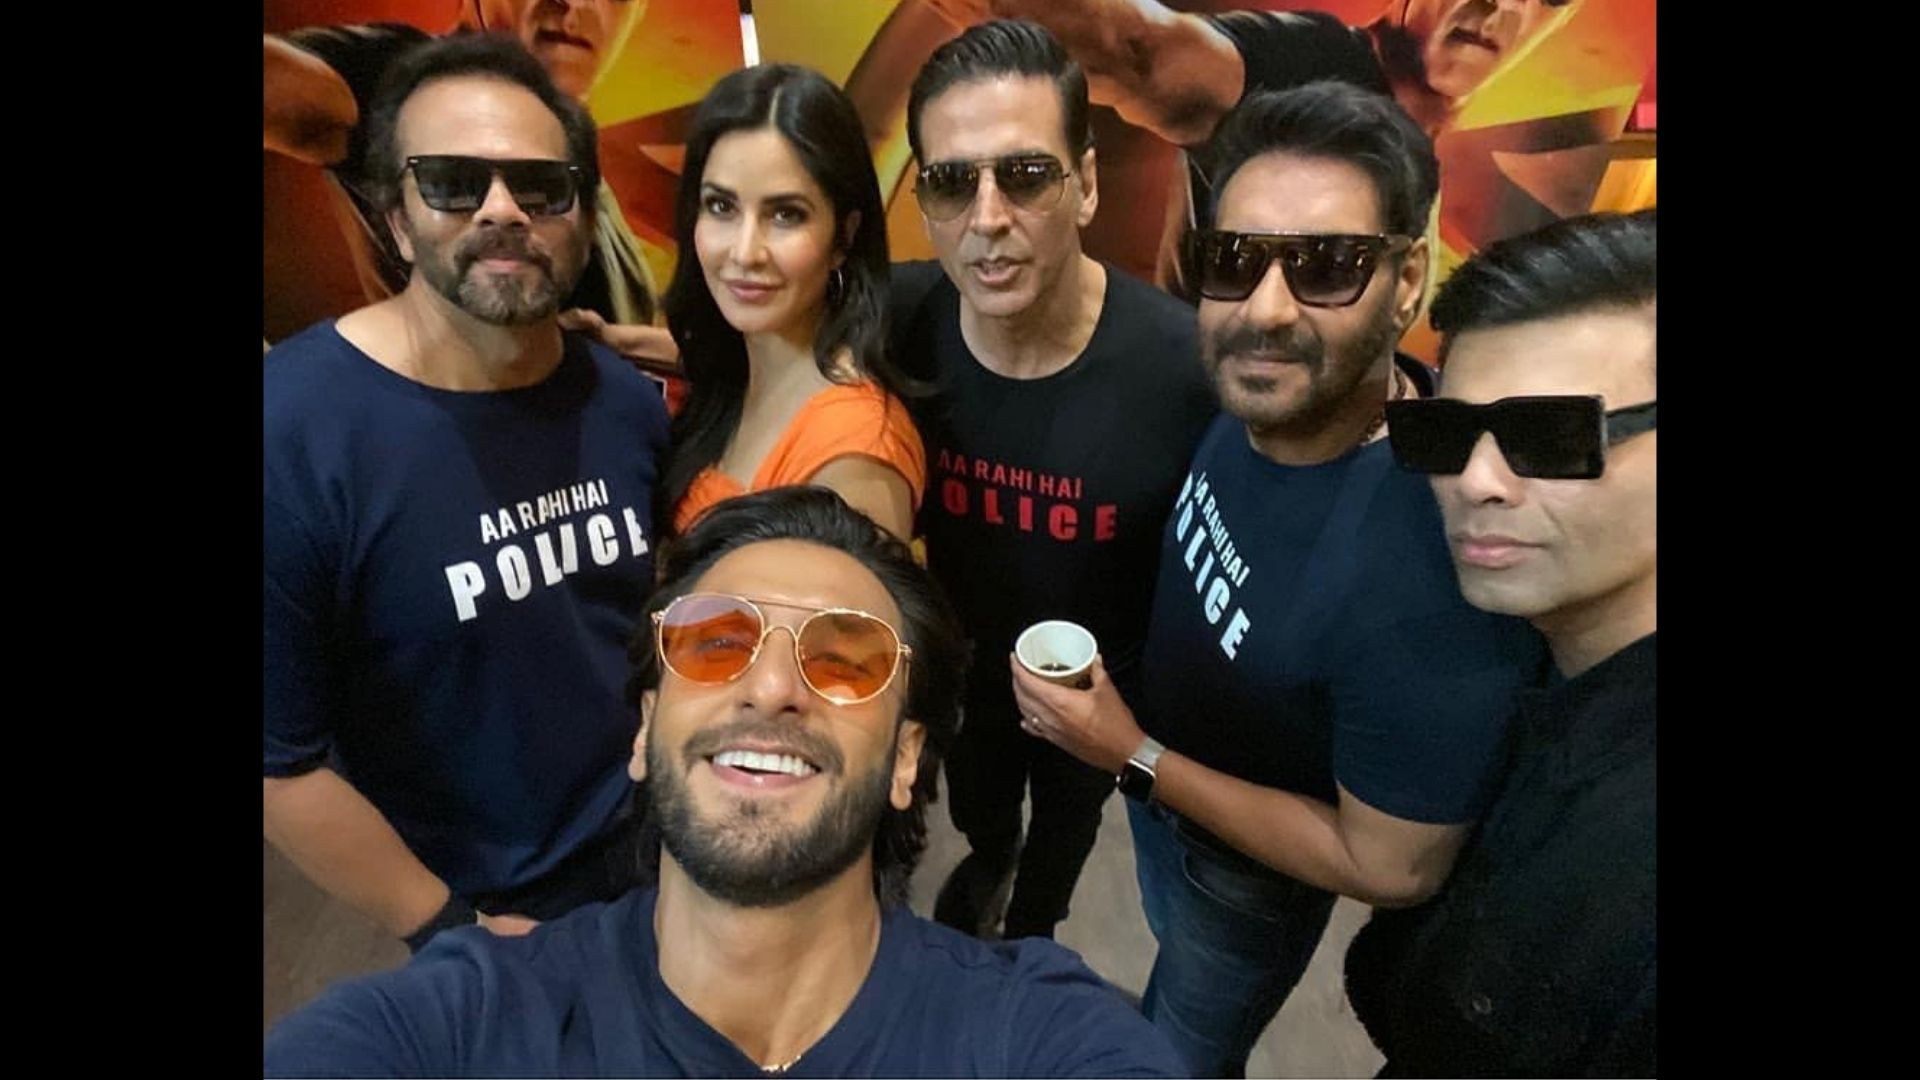 Sooryavanshi To Release On Diwali: Akshay Kumar, Ranveer Singh Share BTS Photo Ft. Them With Ajay Devgn And Rohit Shetty; Actor Duo Is Ecstatic